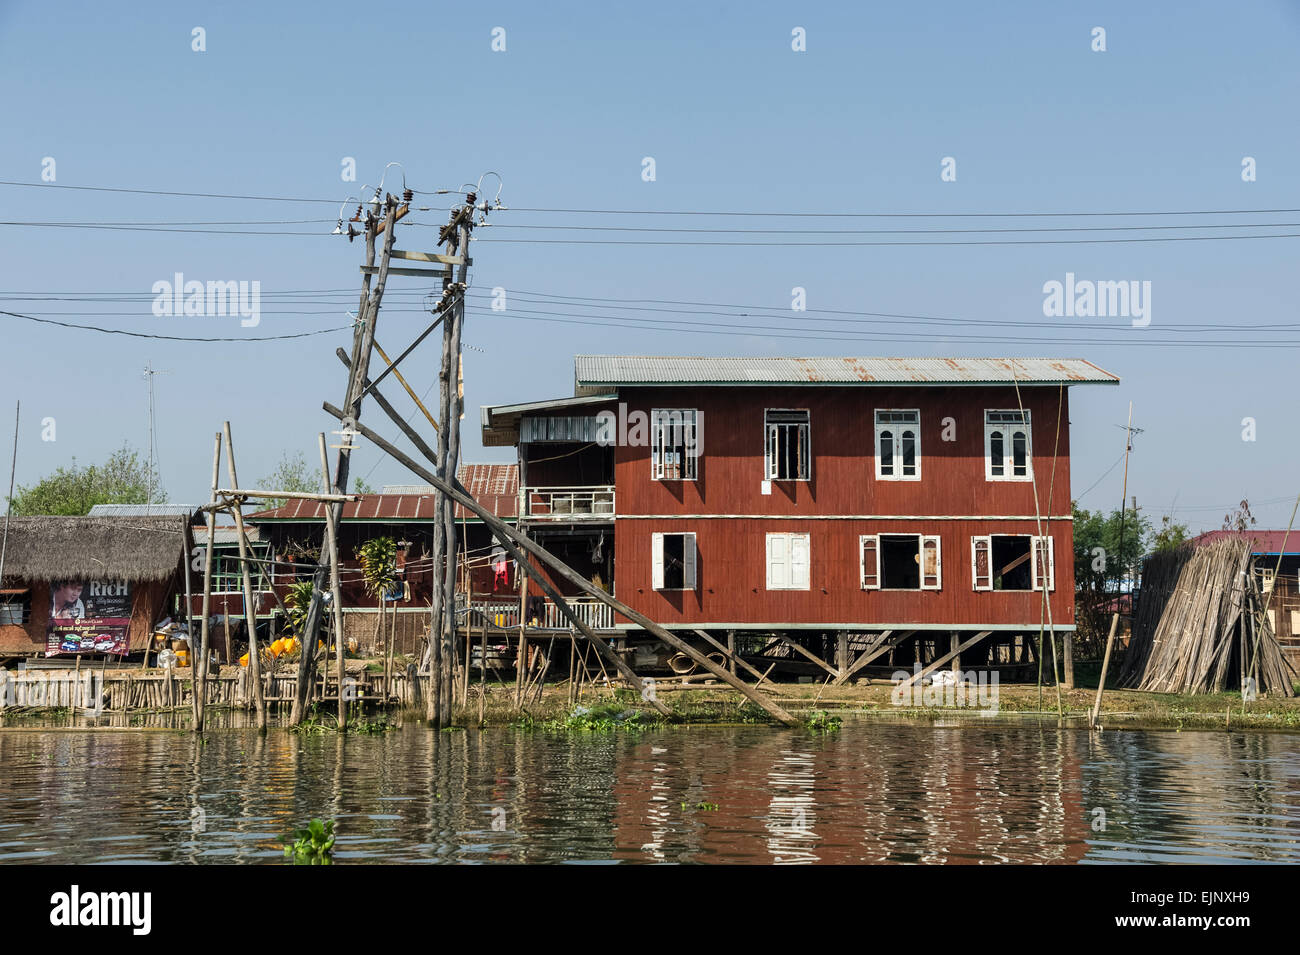 Scene from Inle Lake, stilt houses, note the electricity pylon - Stock Image